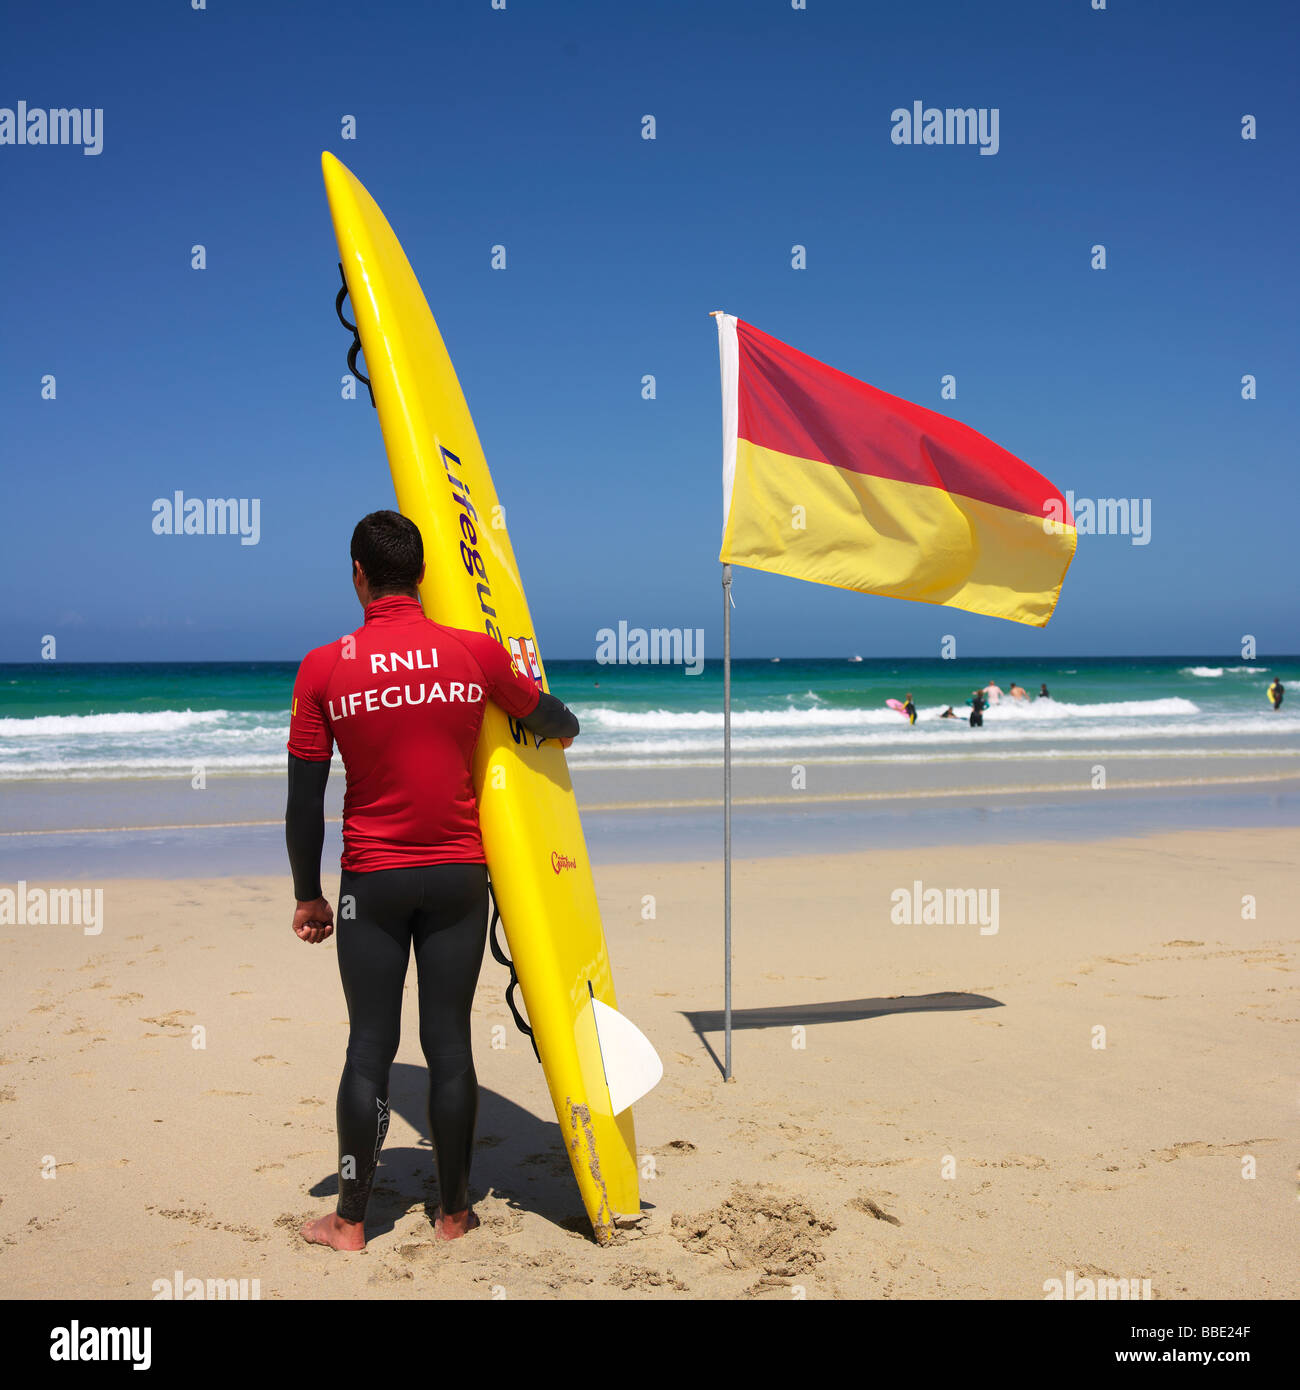 Lifeguard looking out to see, holding a rescue surfboard - Stock Image